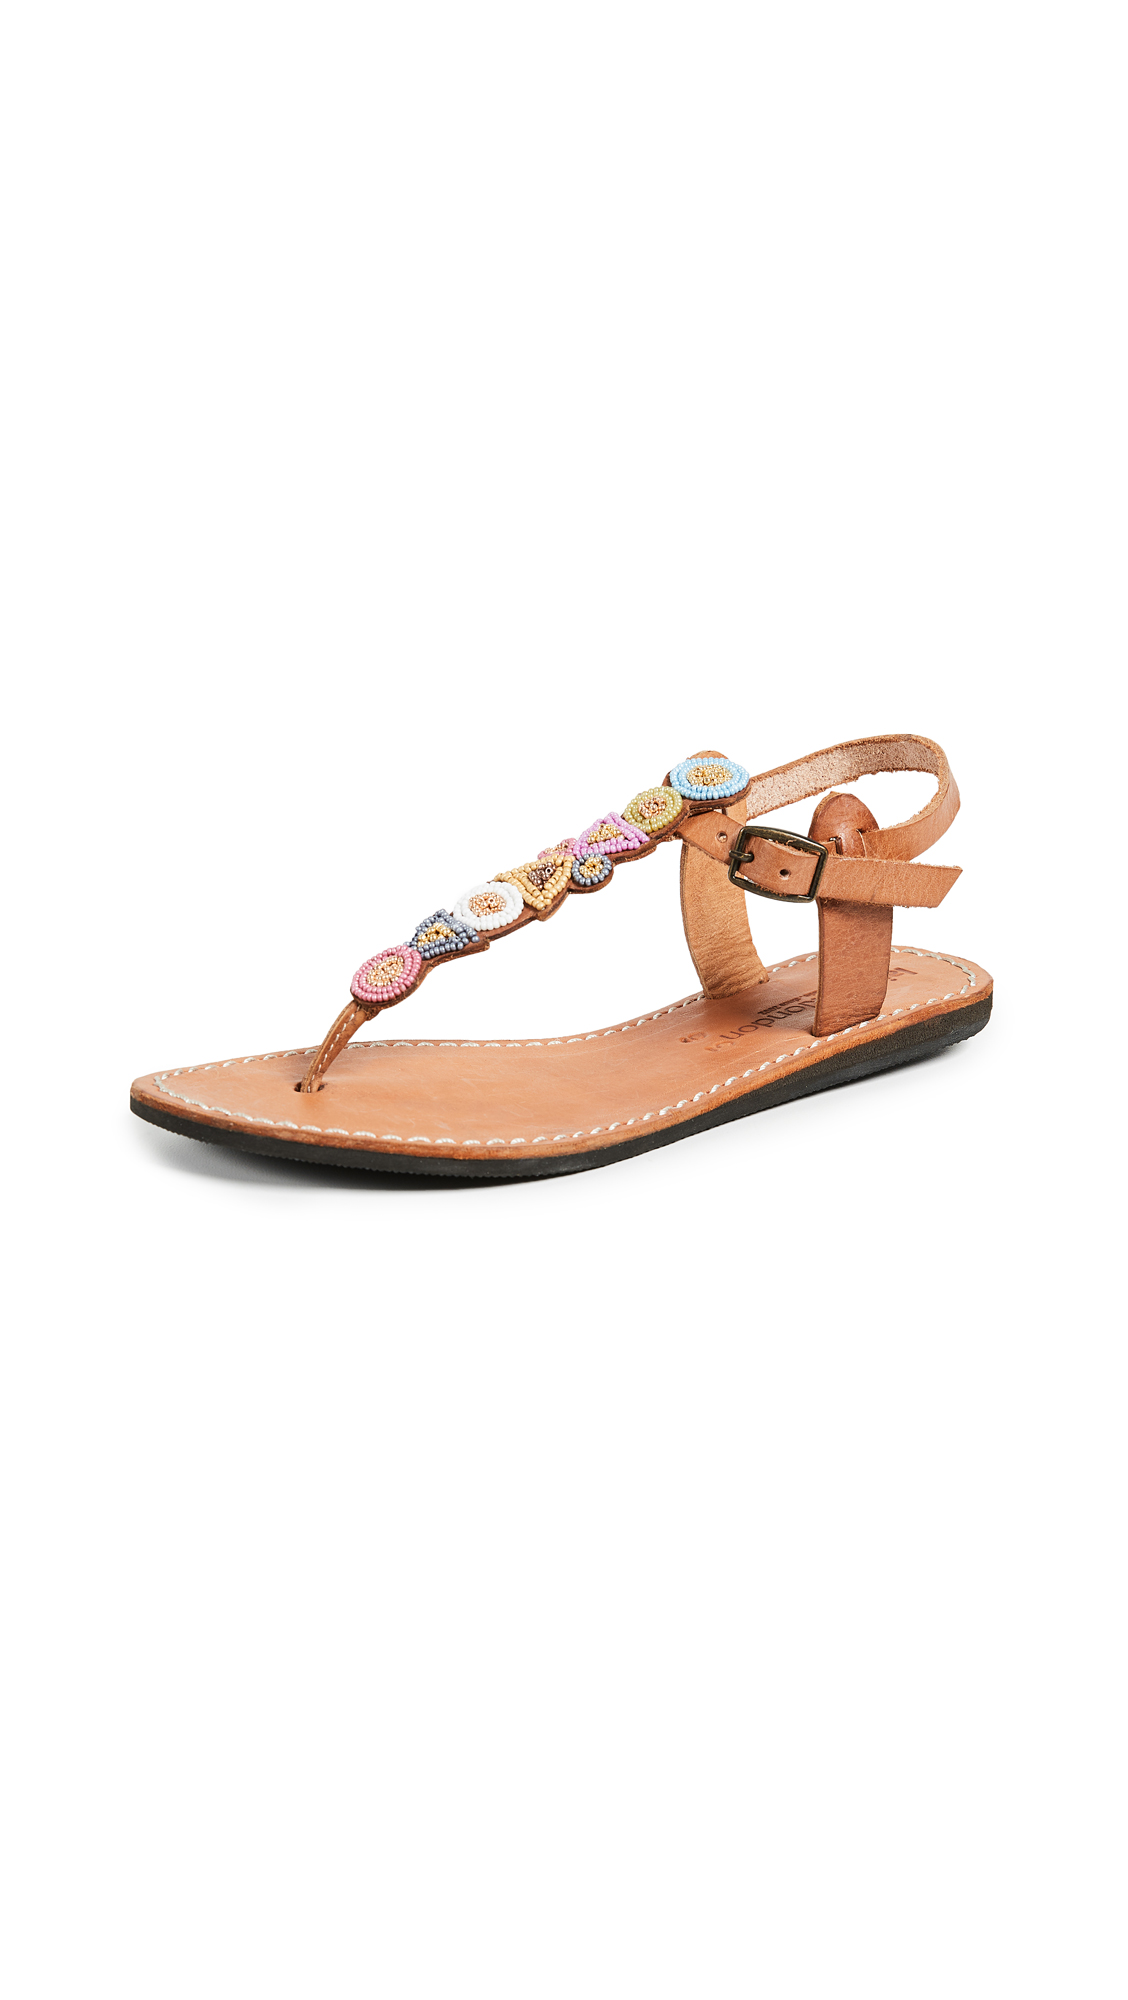 Laidback London Hague T-Strap Sandals